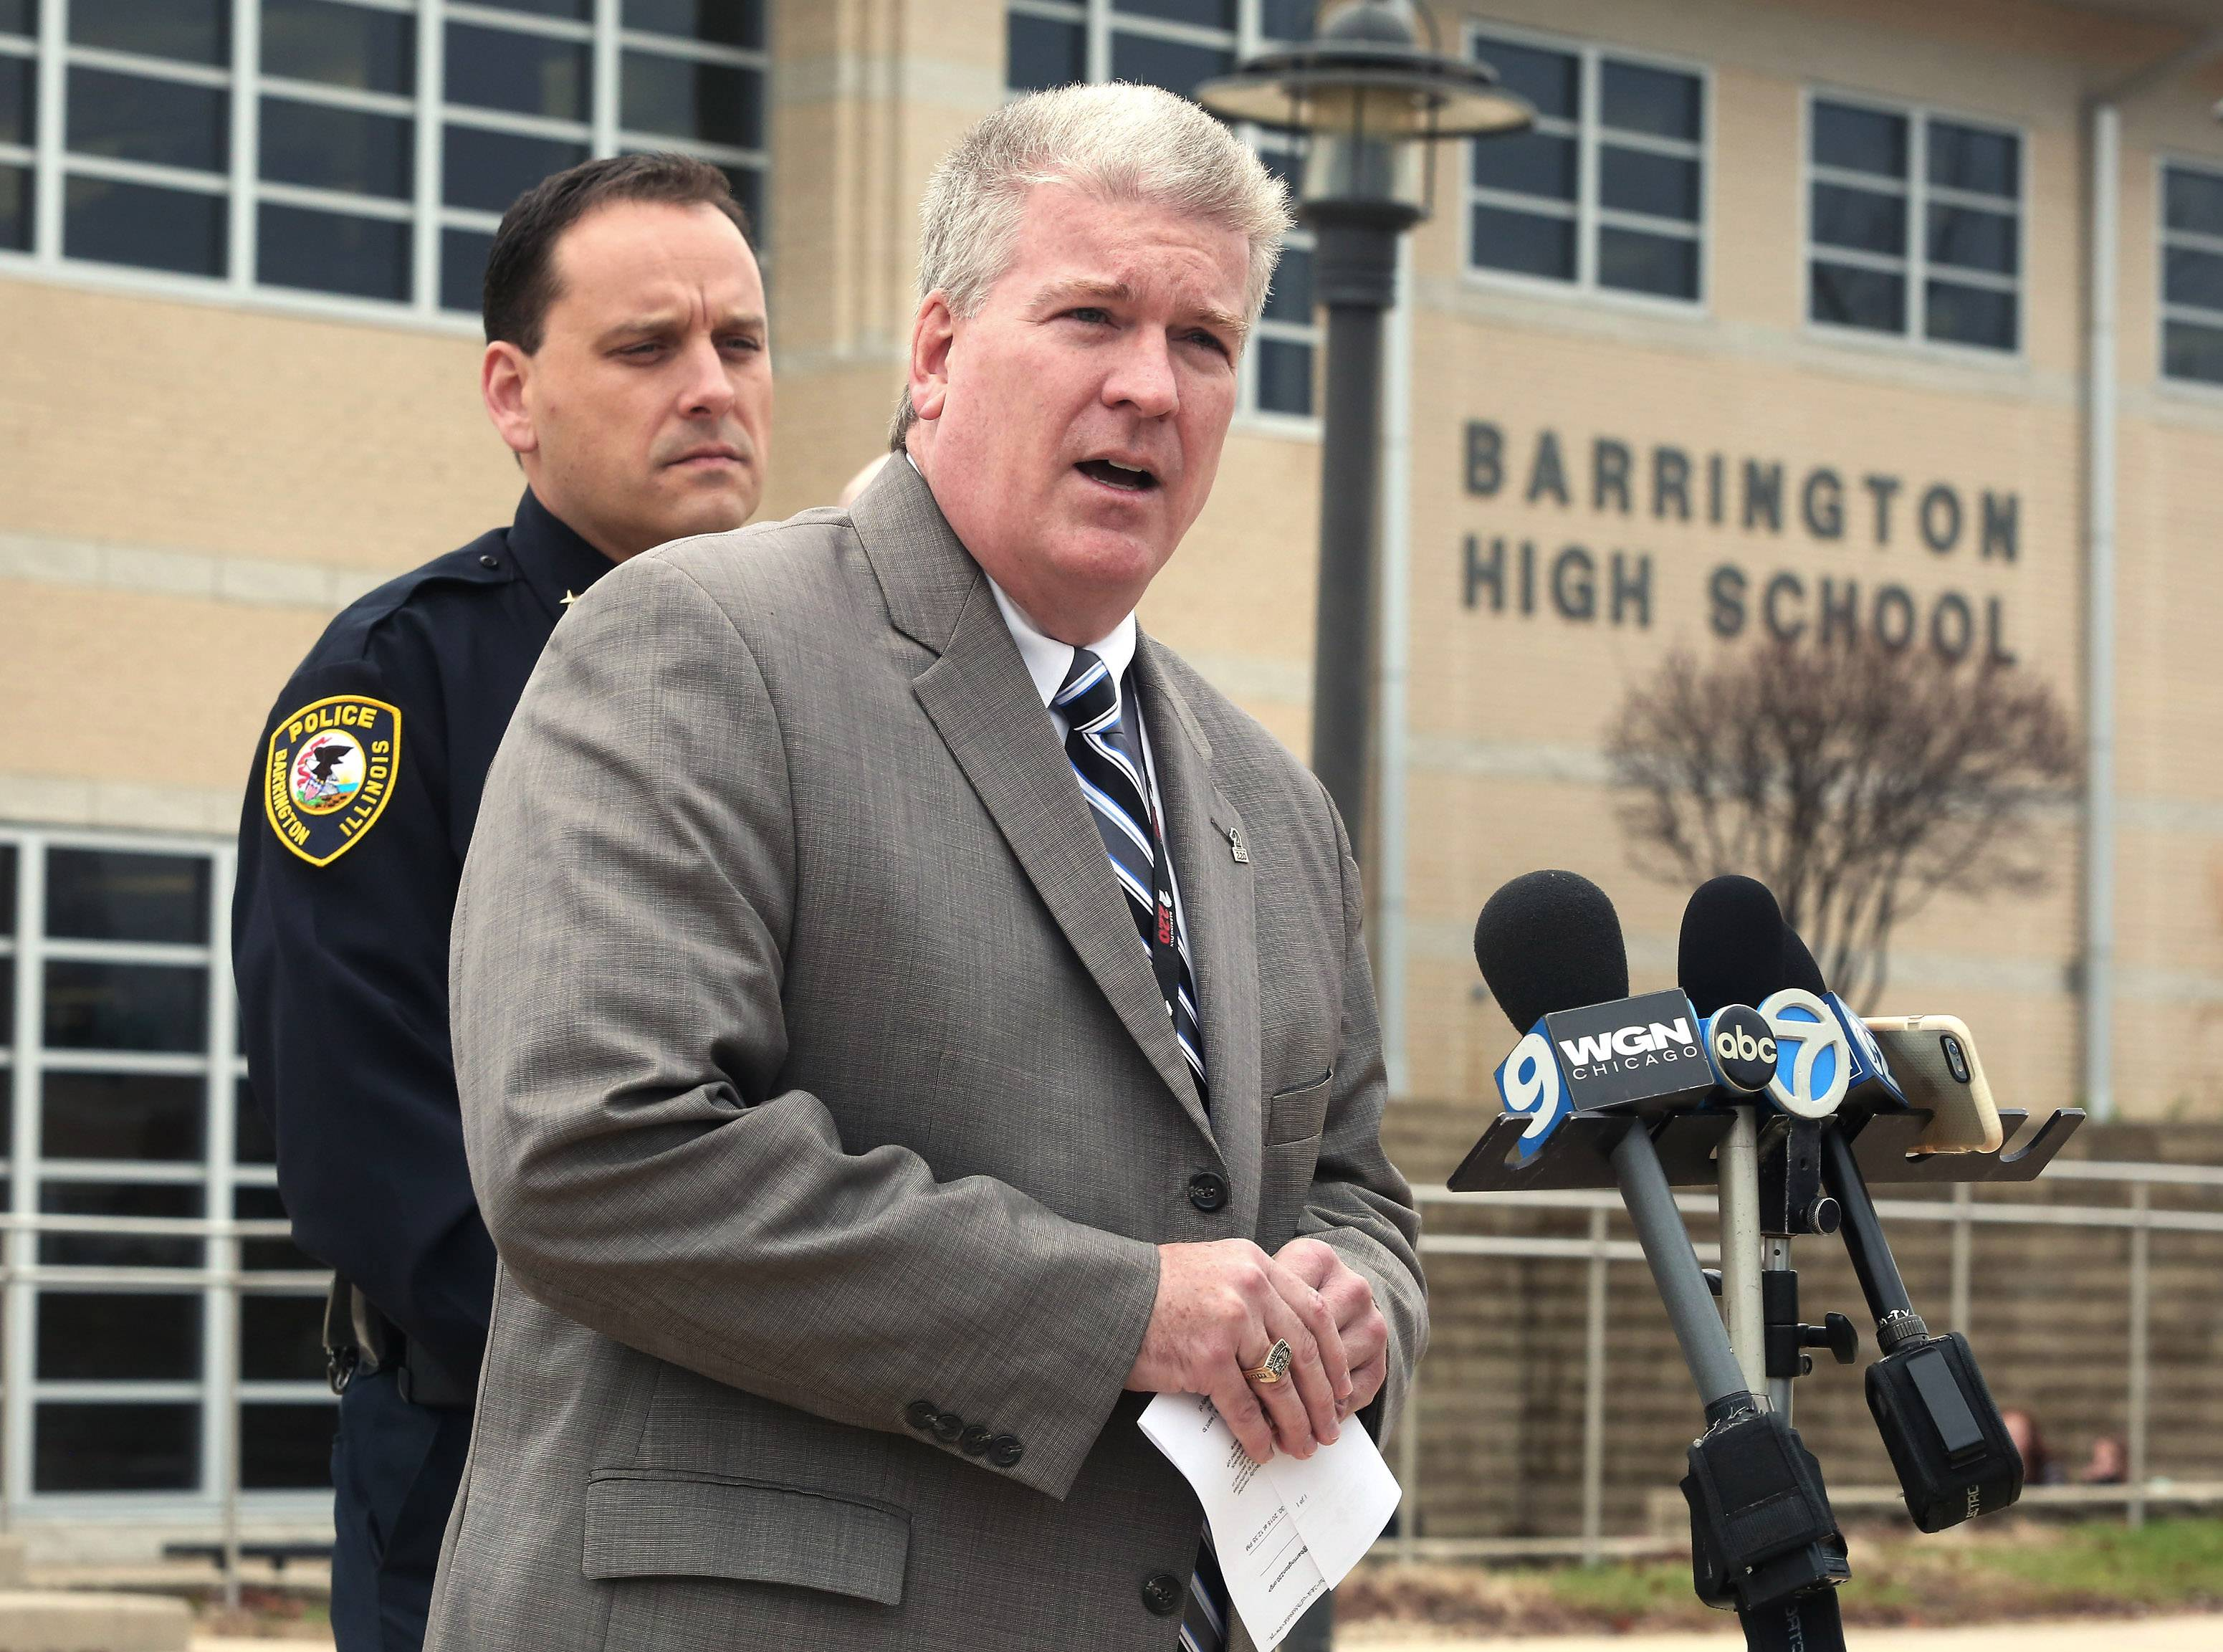 Barrington District 220 Superintendent Brian Harris, wearing gray, and Barrington Police Chief Dave Dorn discuss the arrest of 16-year-old Barrington High School student in possession of a handgun and drugs Monday morning. The campus was locked down for about 45 minutes after a school employee spotted the weapon.